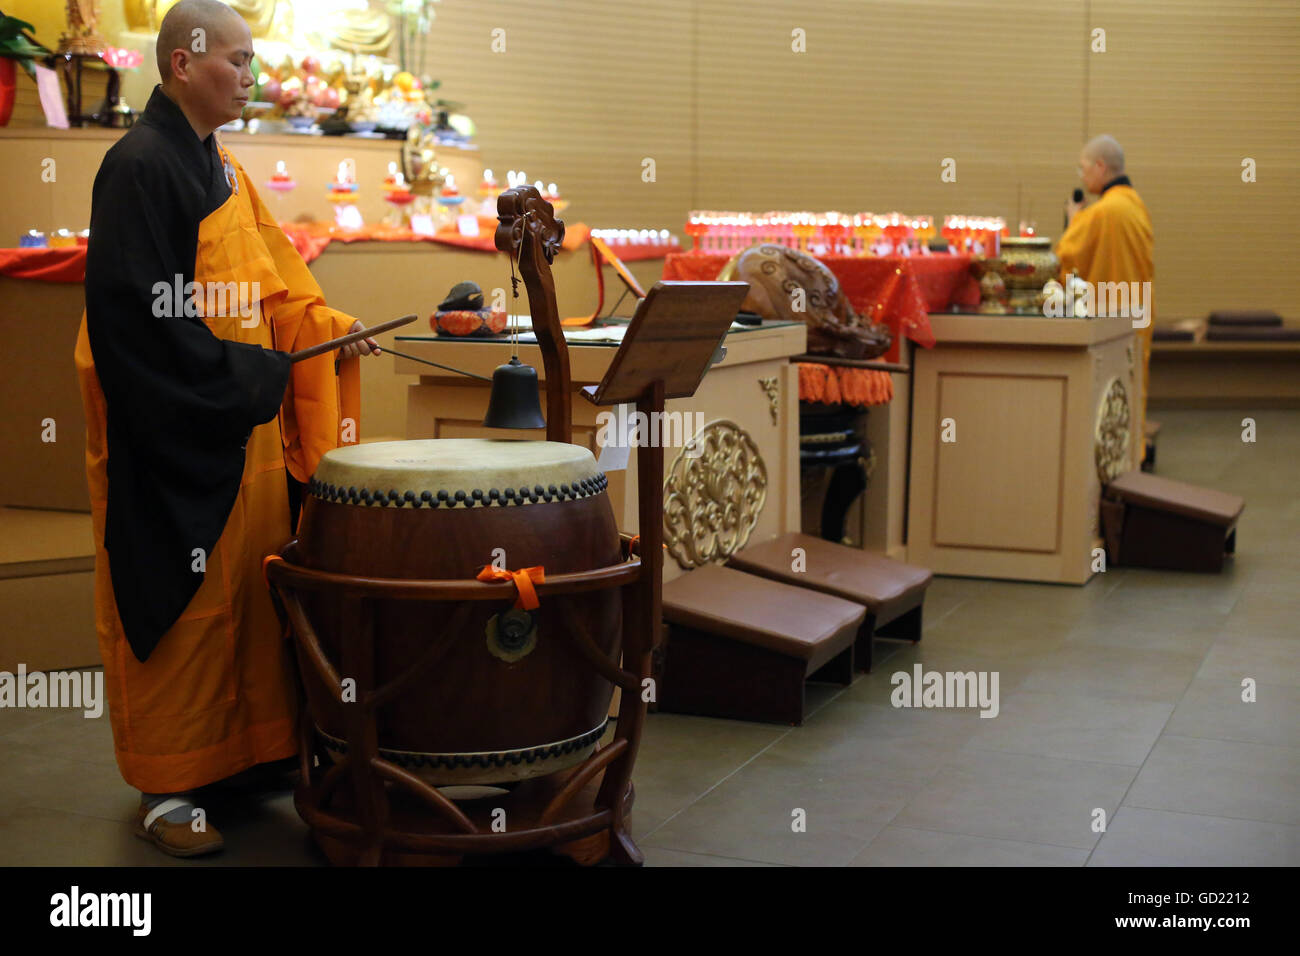 Drum and bell, Buddhist ceremony, Fo Guang Shan temple, Geneva, Switzerland, Europe - Stock Image